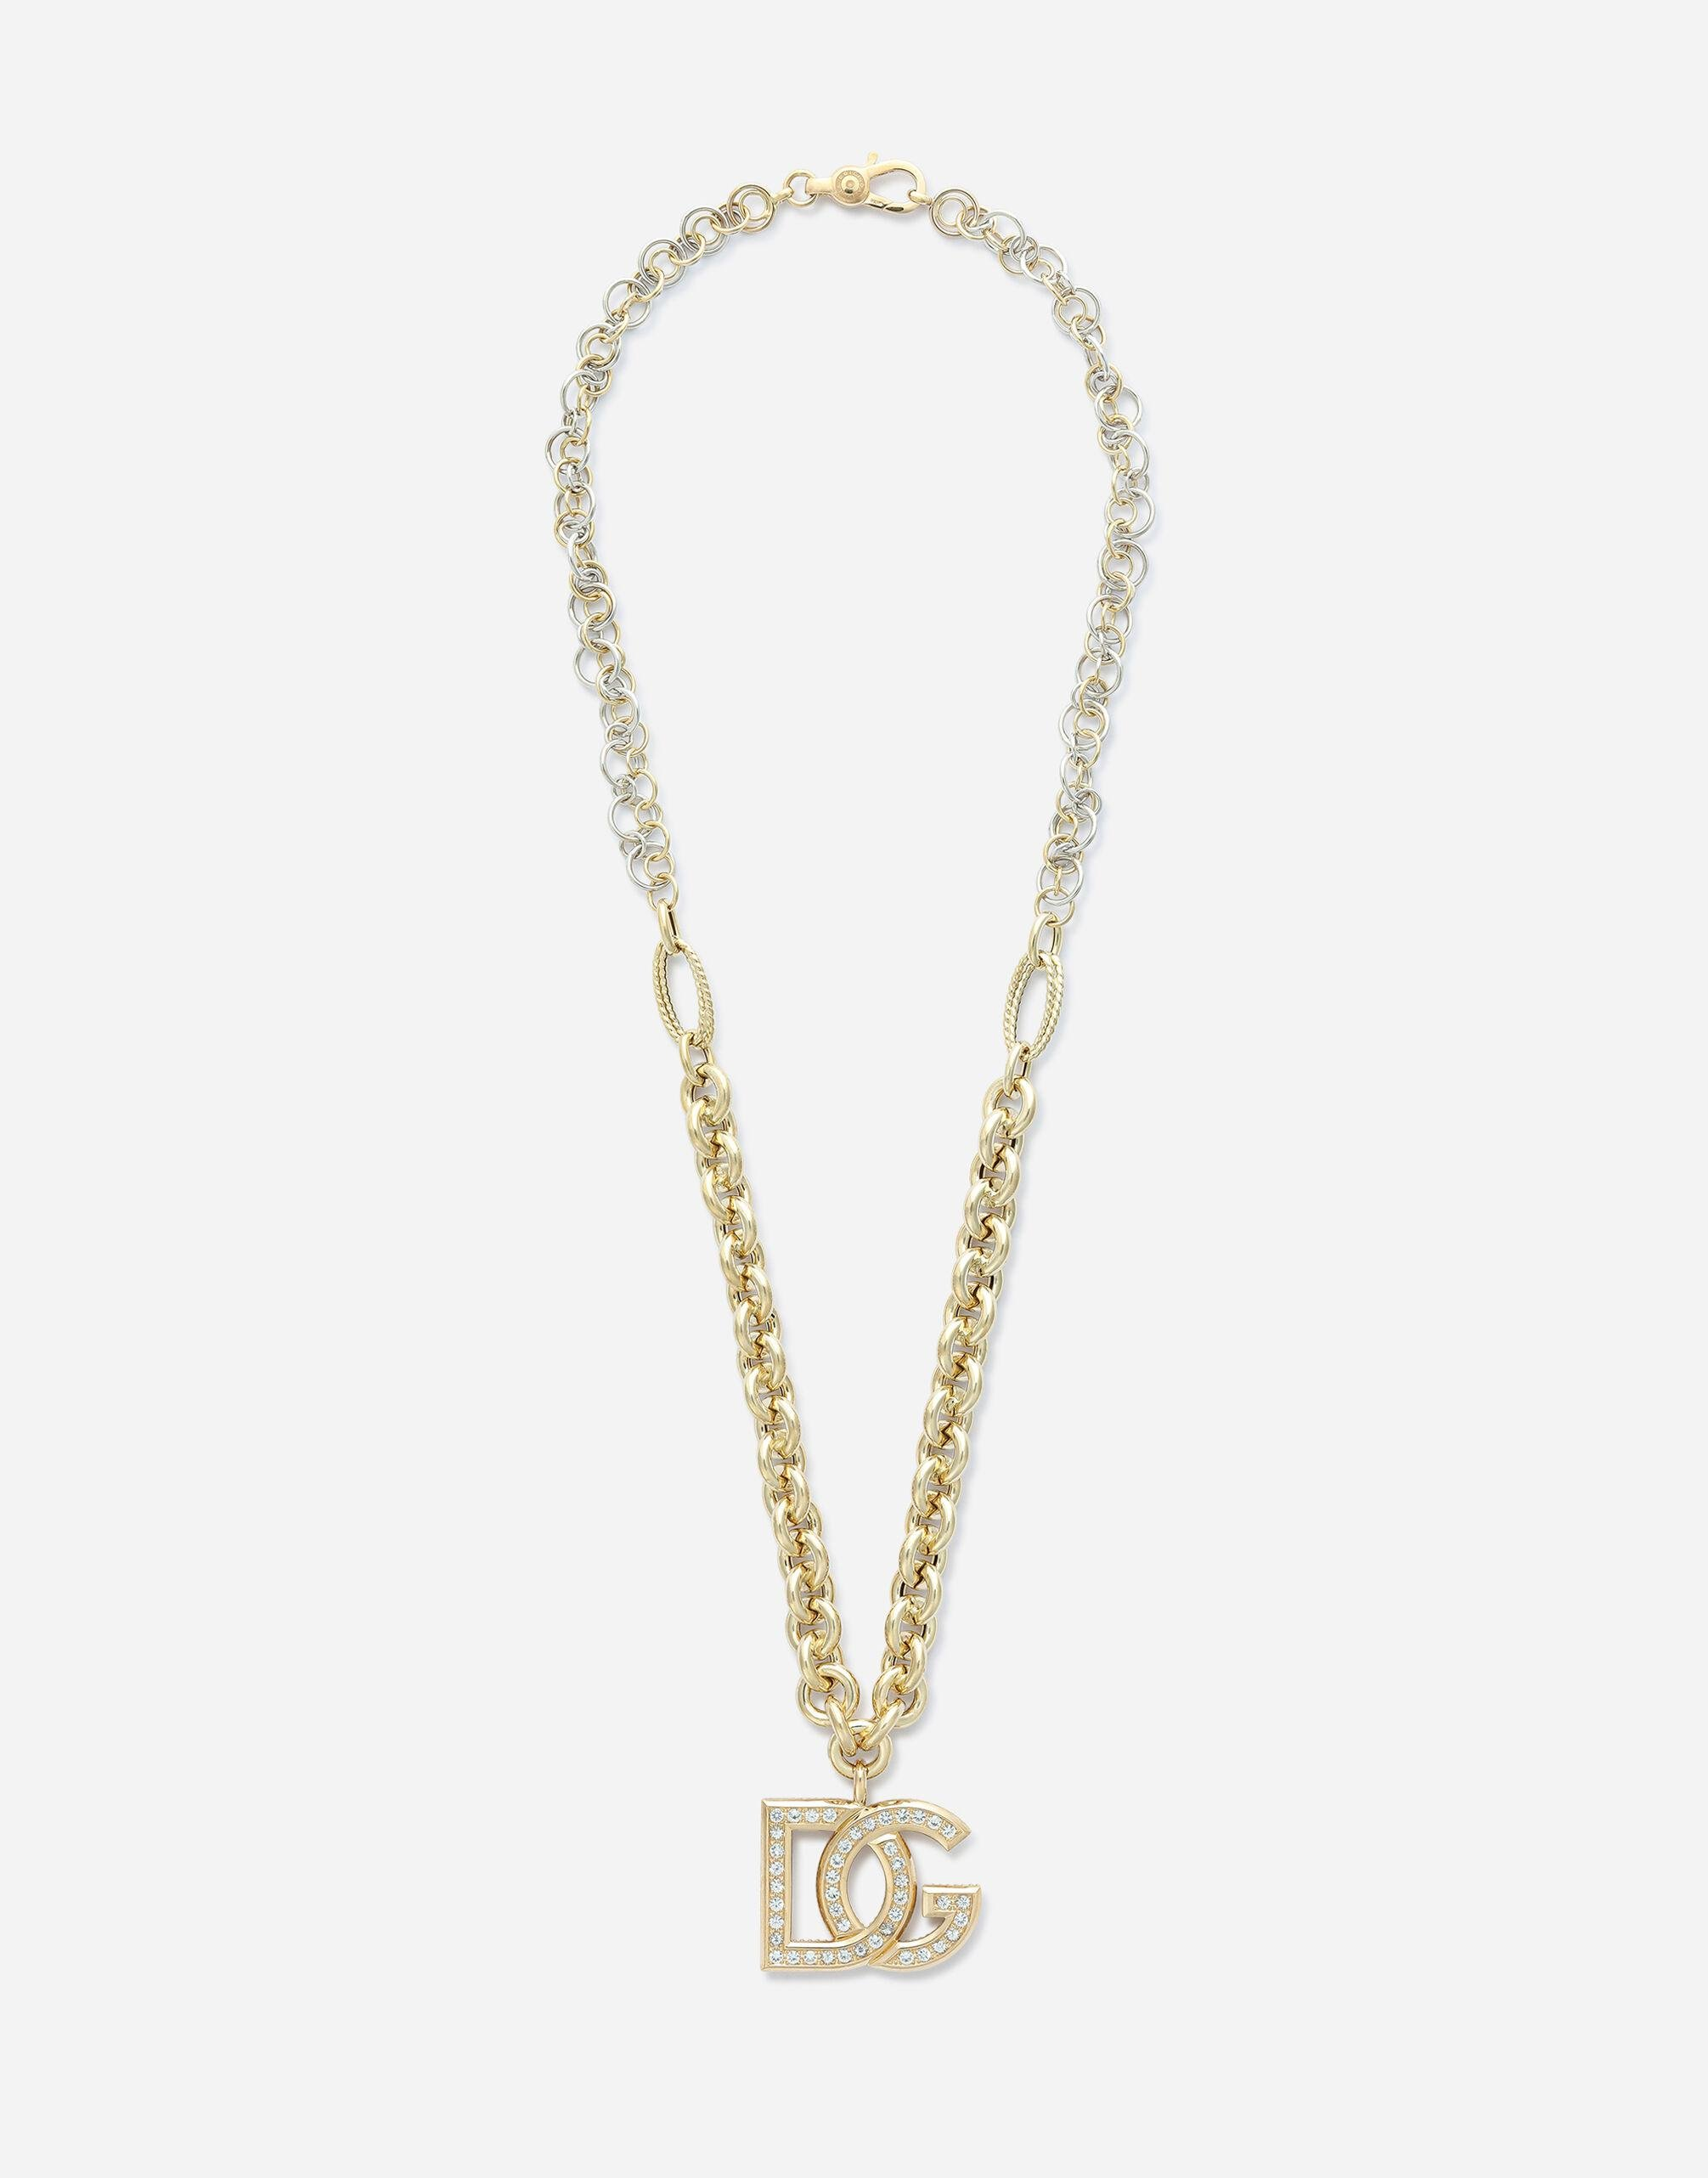 Logo necklace in yellow and white 18kt gold with colorless sapphires